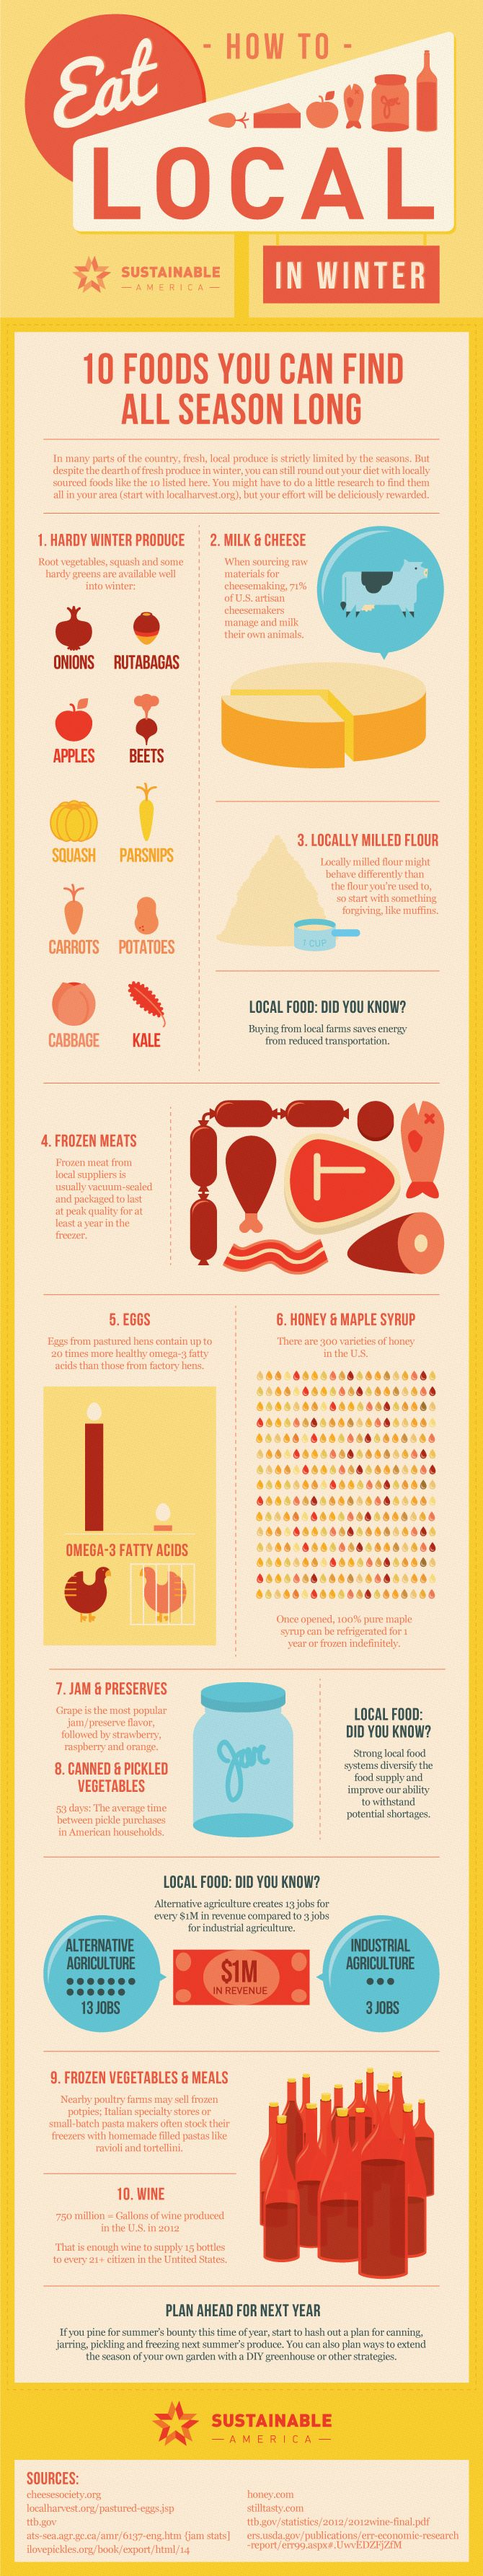 How to Eat Local in the Winter: 10 Foods You Can Find All Season Long [Infographic]